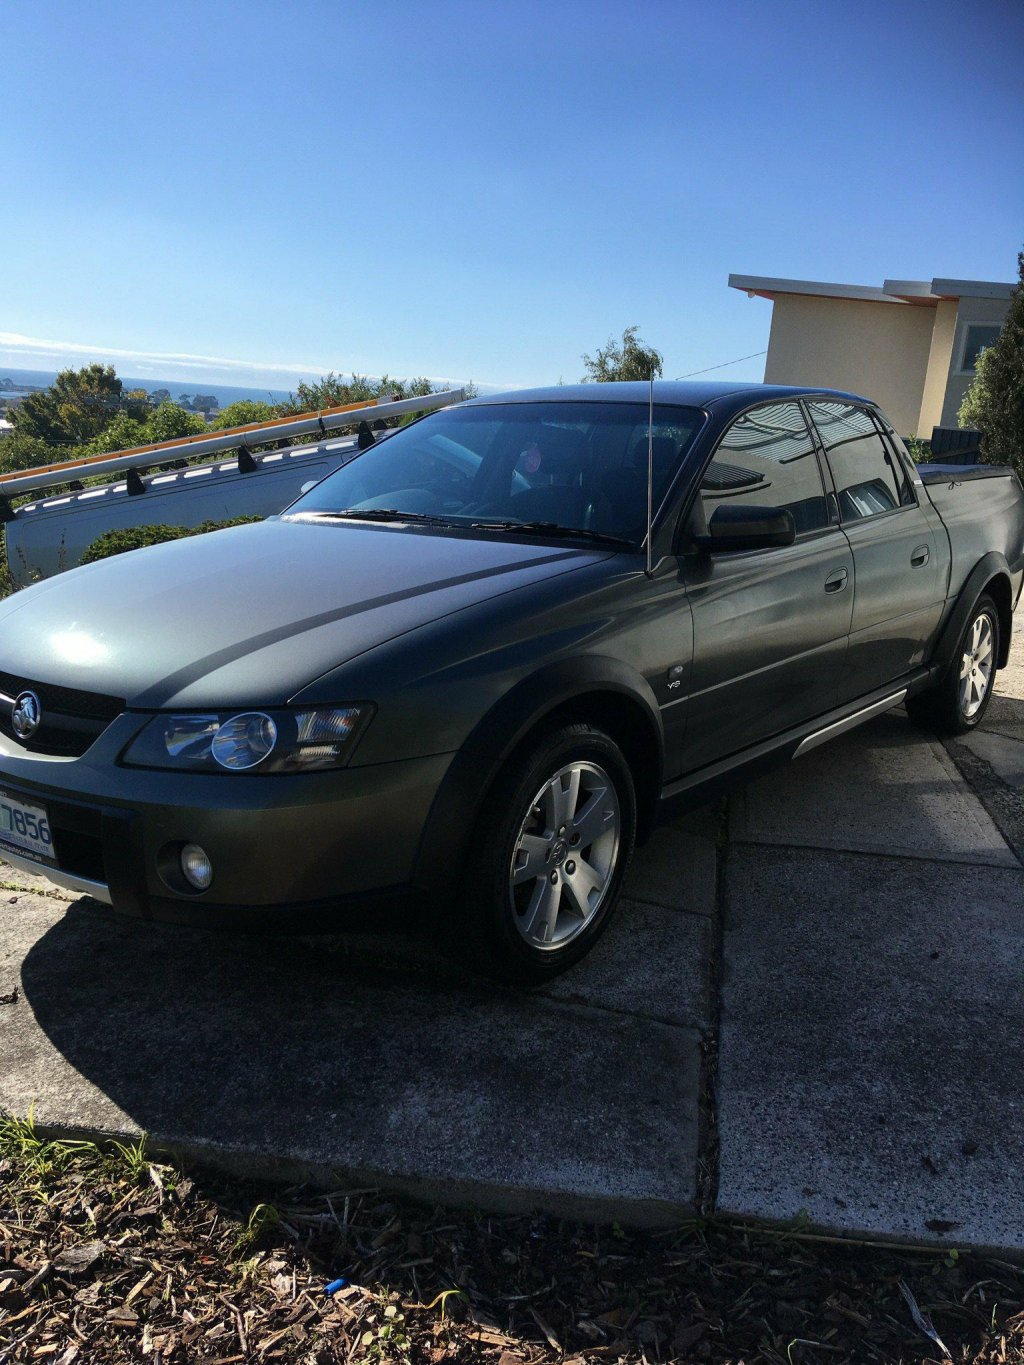 2004 Holden Crewman Cross 8 VYII